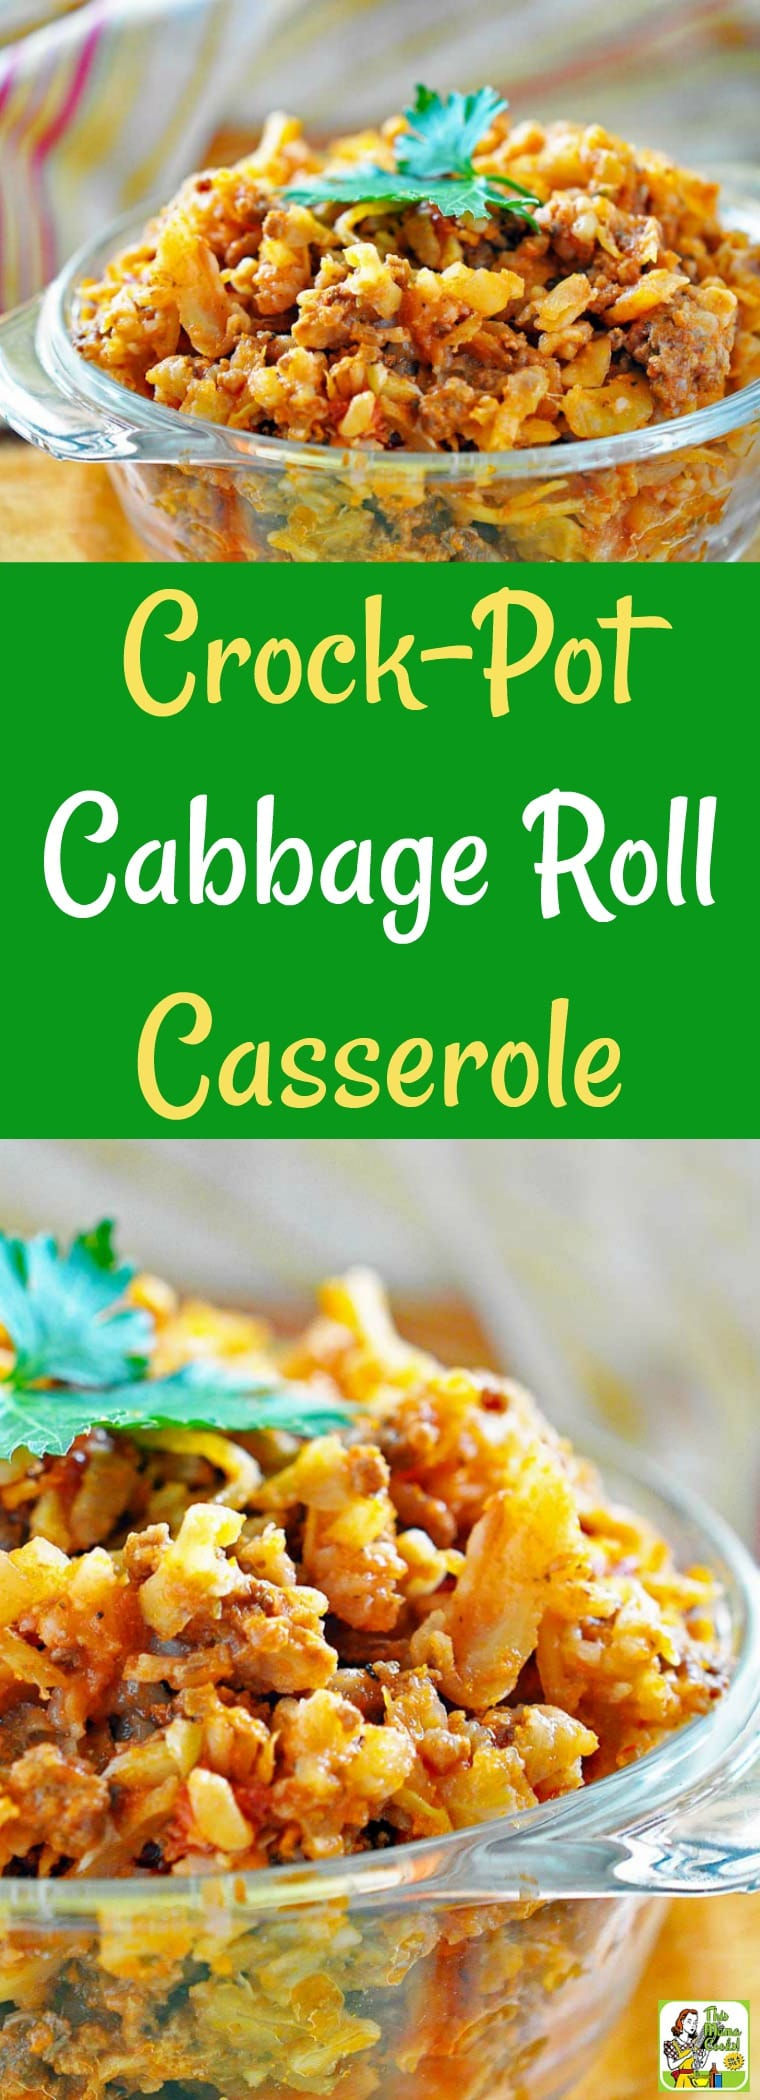 This Cabbage Roll Casserole is a fix it and forget it recipe that's made in your crock-pot. Crock Pot Stuffed Cabbage is easy to make because it uses convenient yet healthy items from the store like coleslaw mix and ground sirloin. #crockpot #slowcooker #stuffedcabbage #casserole #easyrecipe #groundbeef